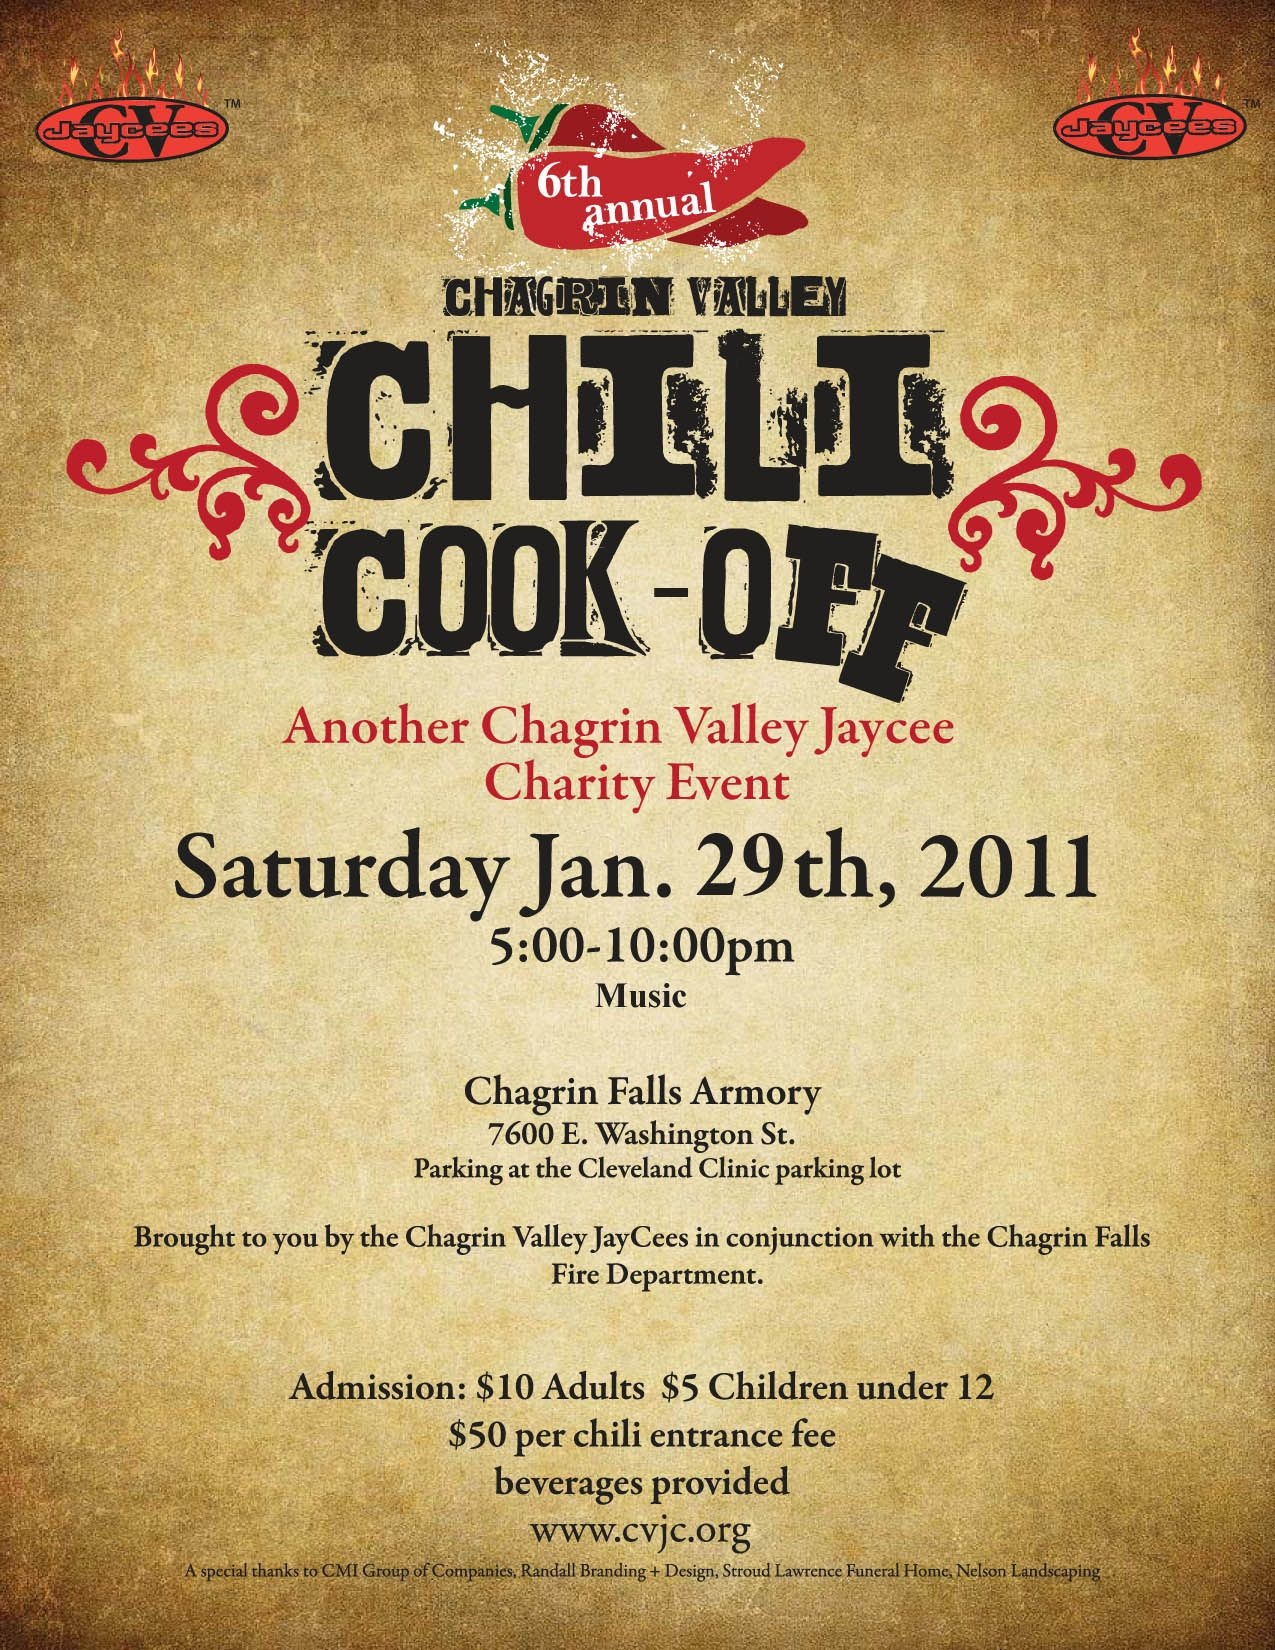 Chili Cook Off Flyer Template Free Printable - Wow - Image - Chili Cook Off Printables Free